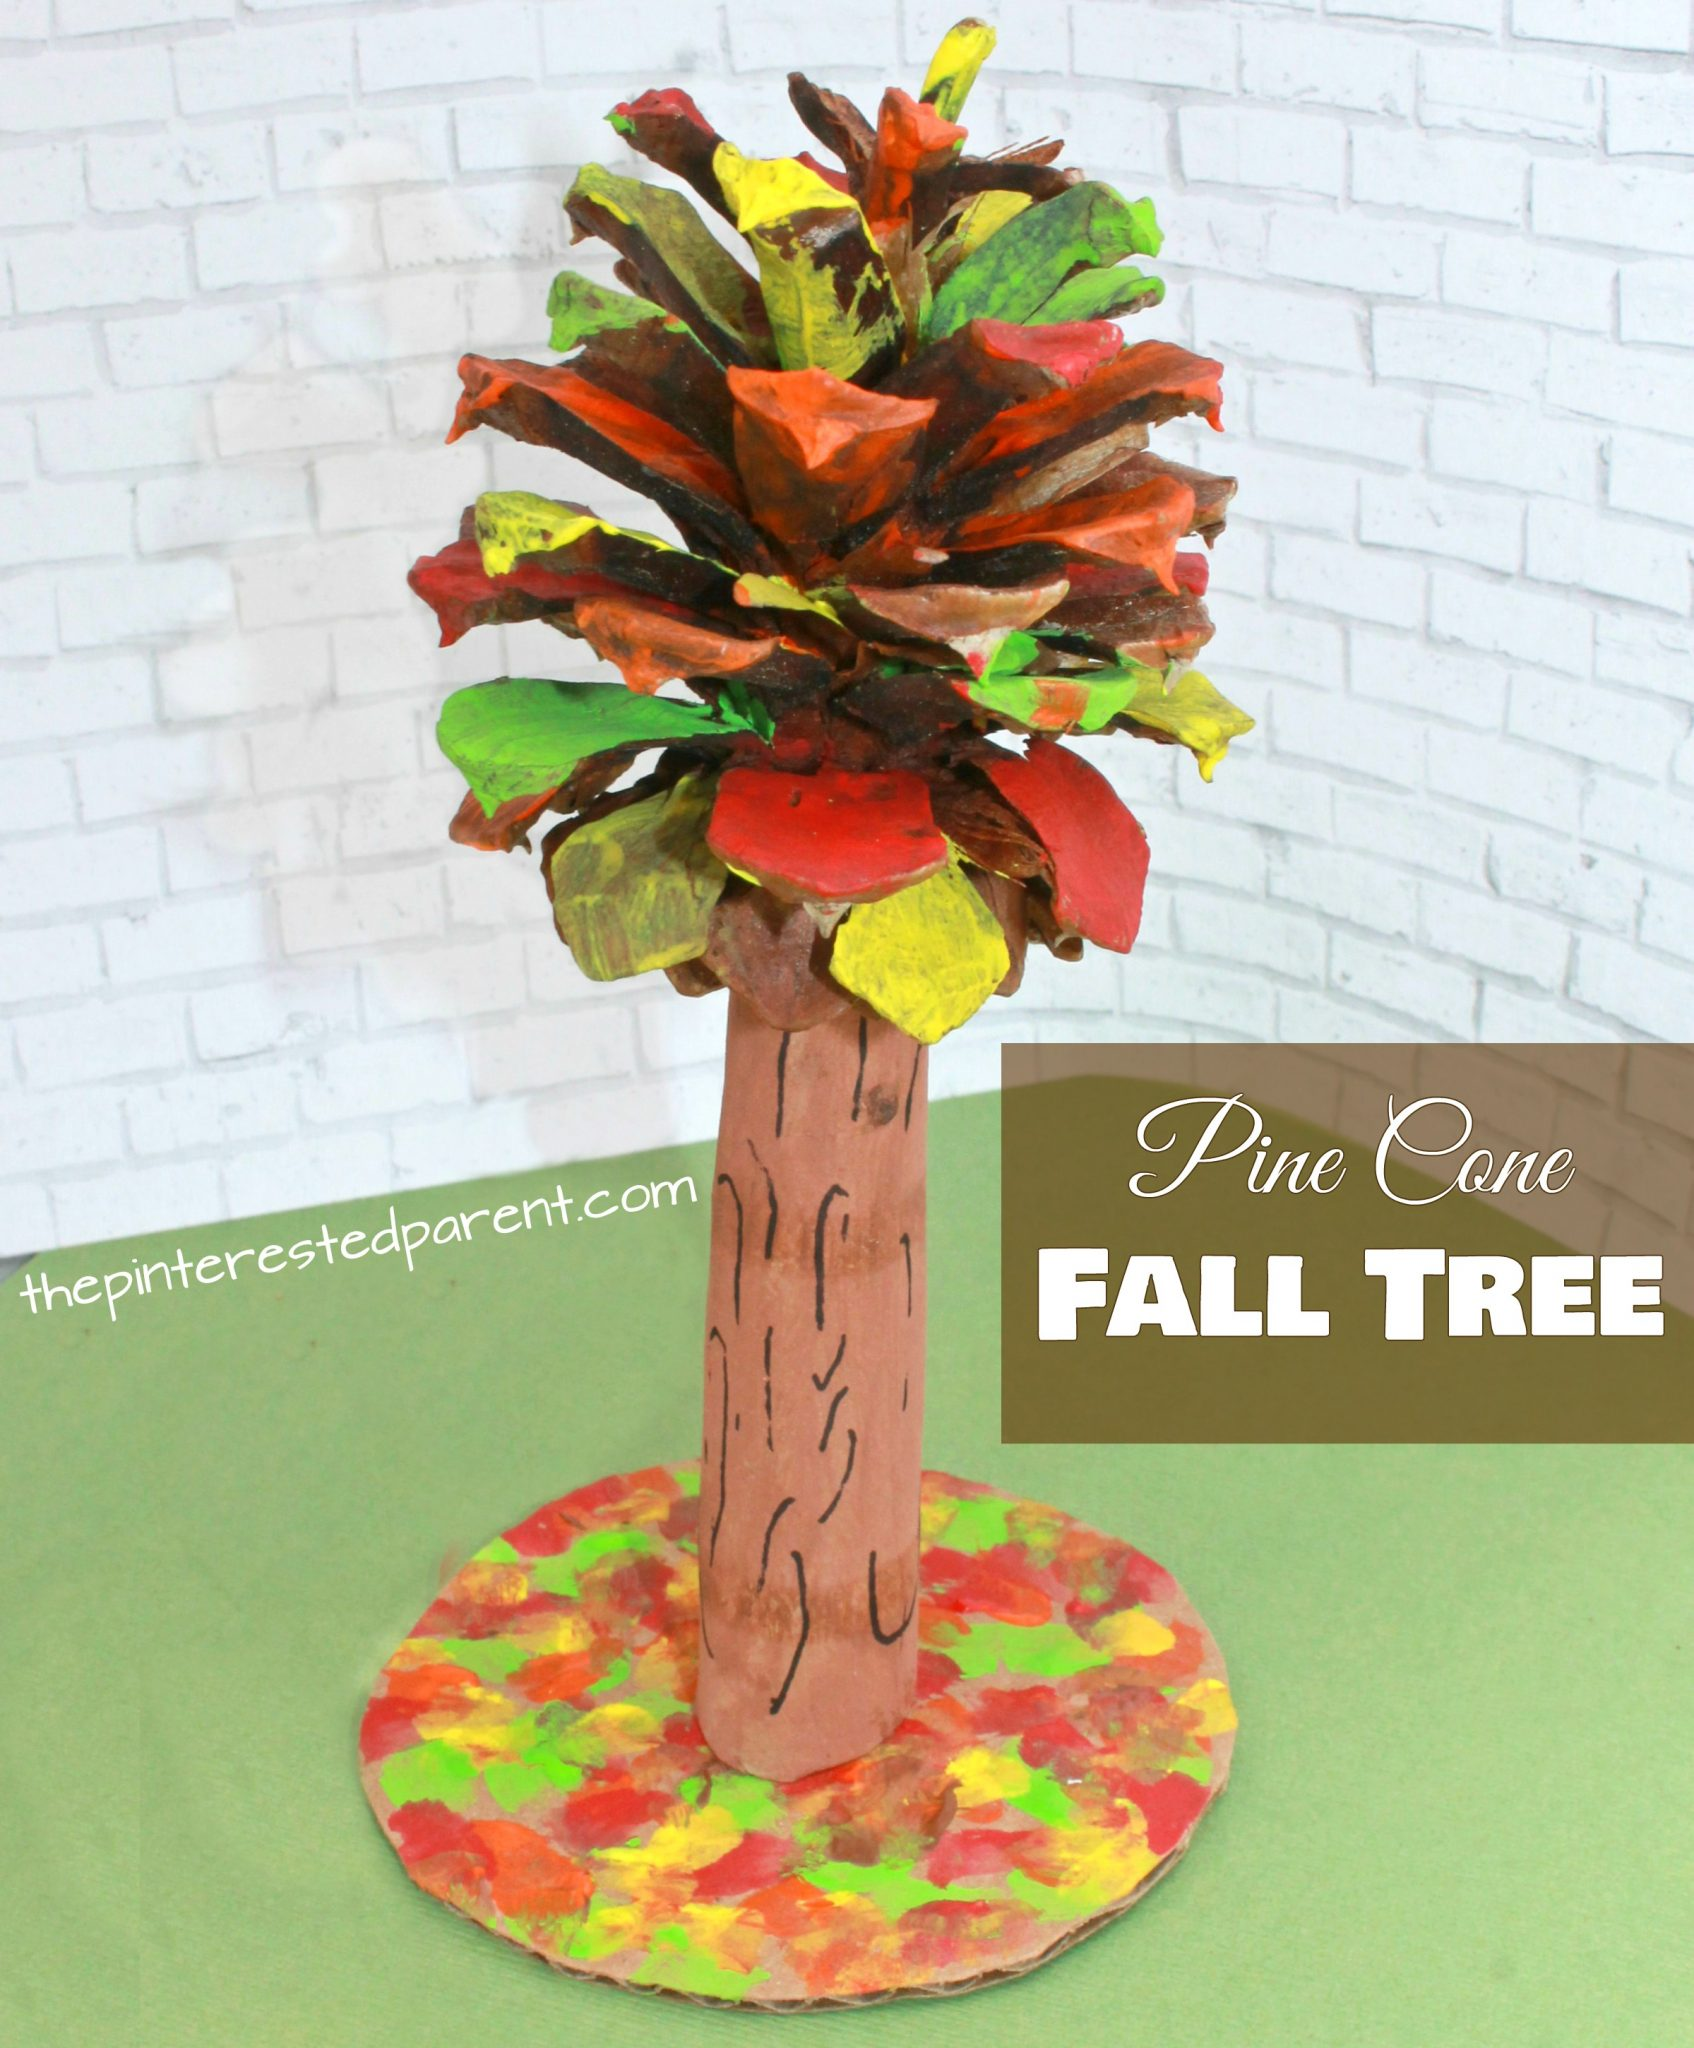 pine cone fall tree craft the pinterested parent. Black Bedroom Furniture Sets. Home Design Ideas